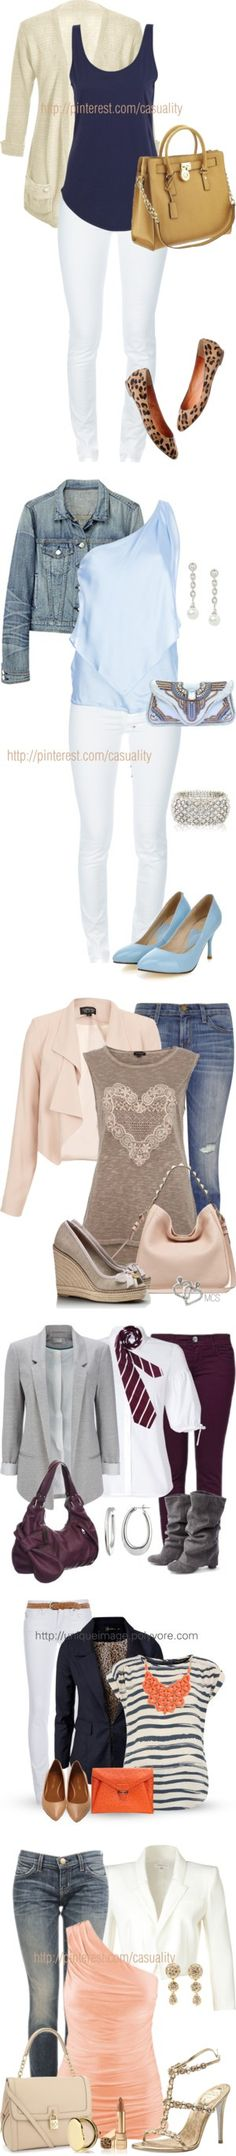 """""""Dressy Jean Sets"""" by madamegeorge ❤ liked on Polyvore"""